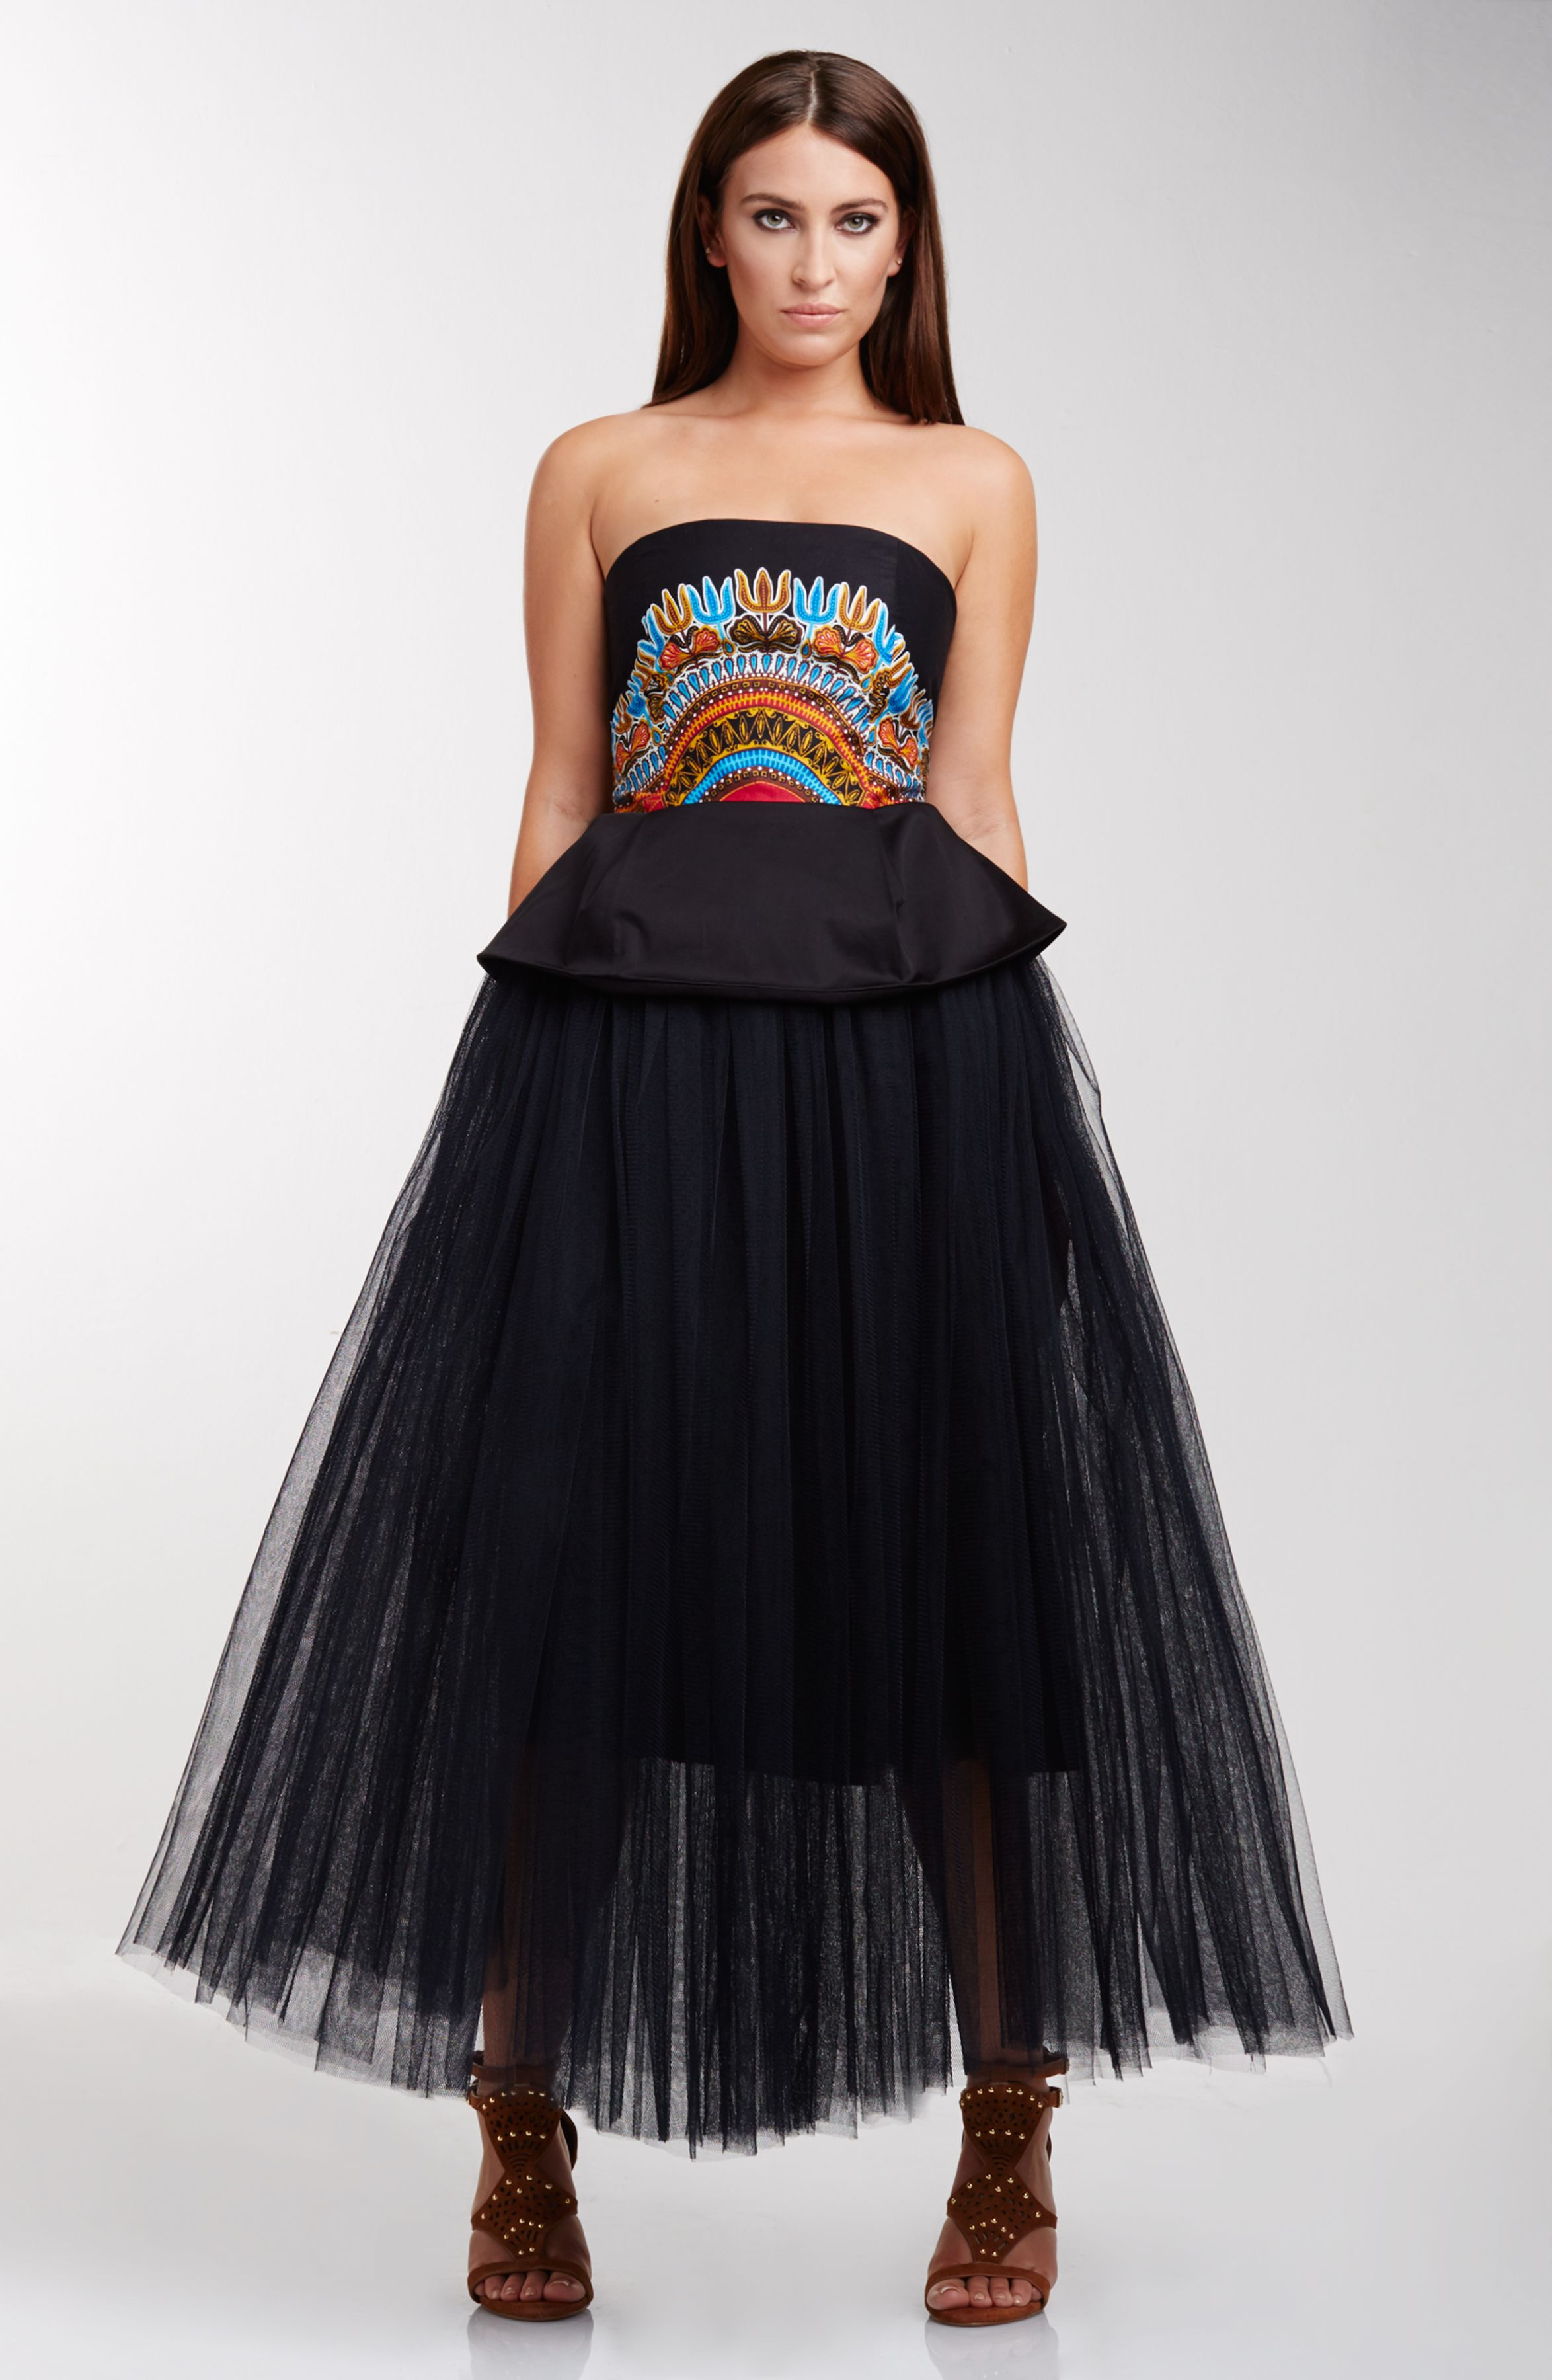 c93abee486 MISHANTY Afircan Inspired Fashion Angelina Bustier Top Black Mesh Tulle  Skirt